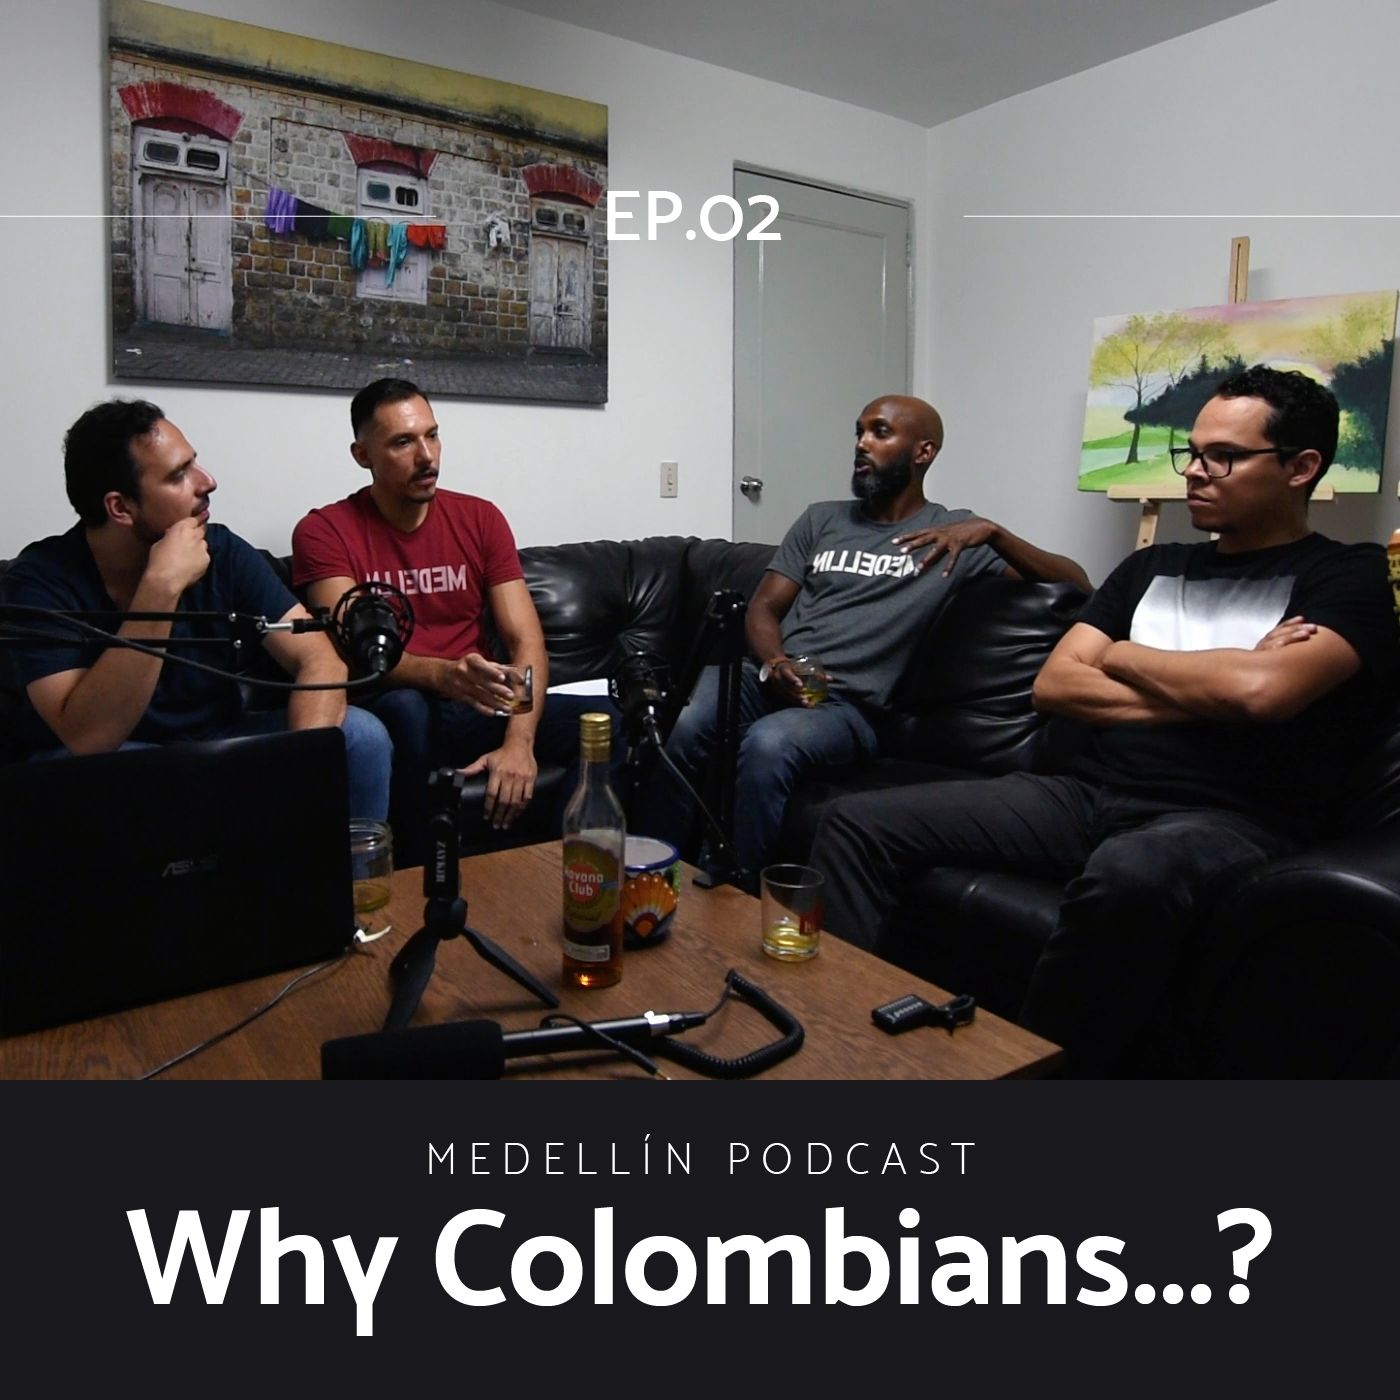 Why Colombians...? - Medellin Podcast Ep. 02